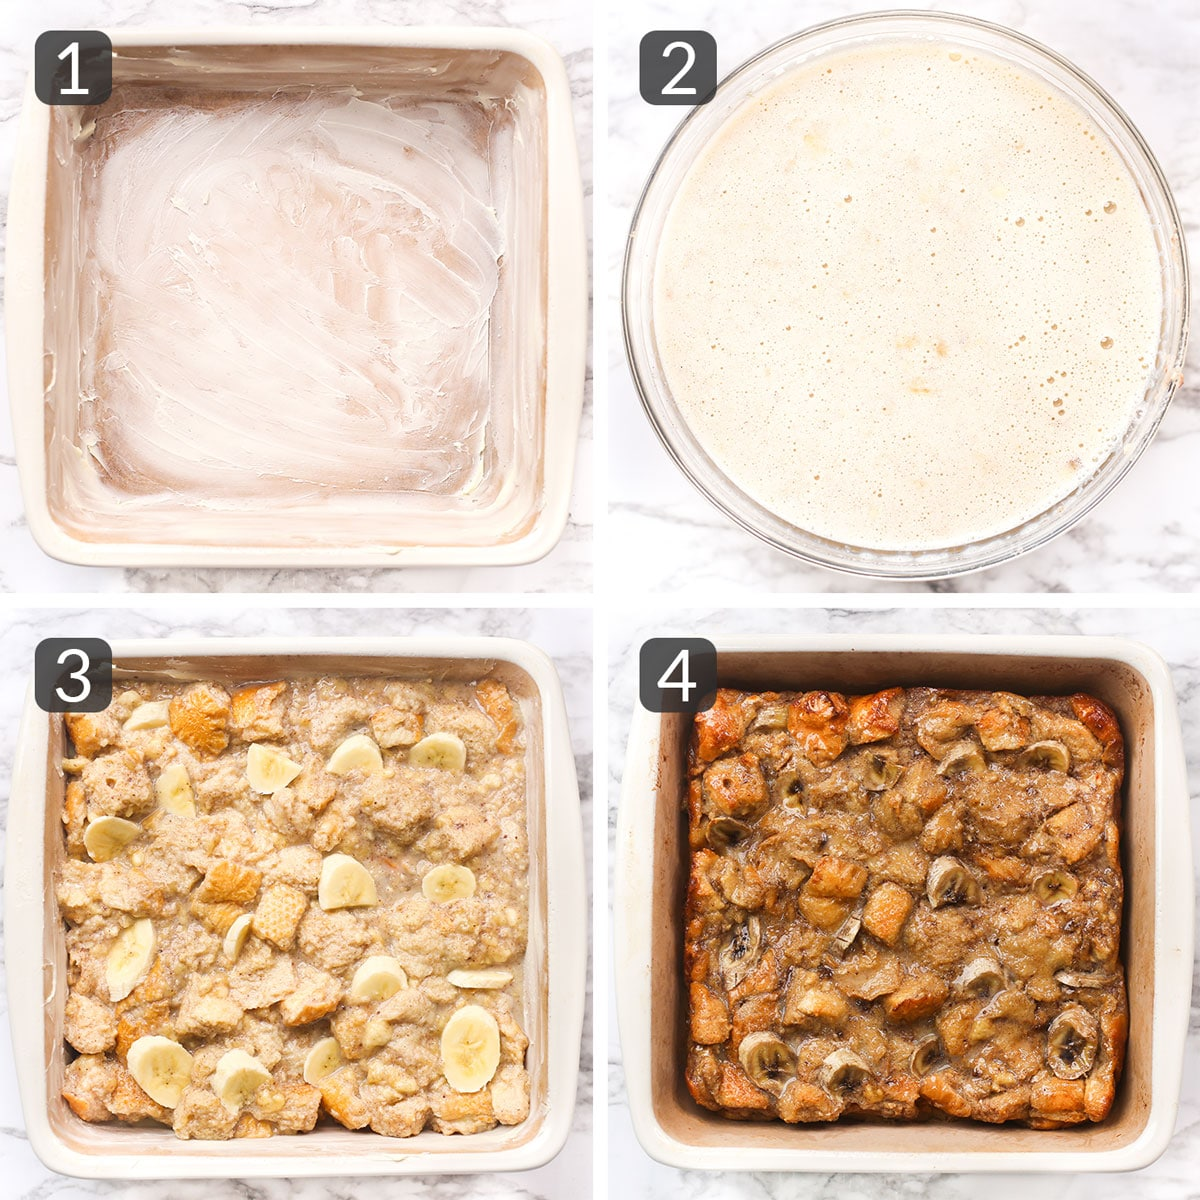 Step photos showing how to make banana bread pudding